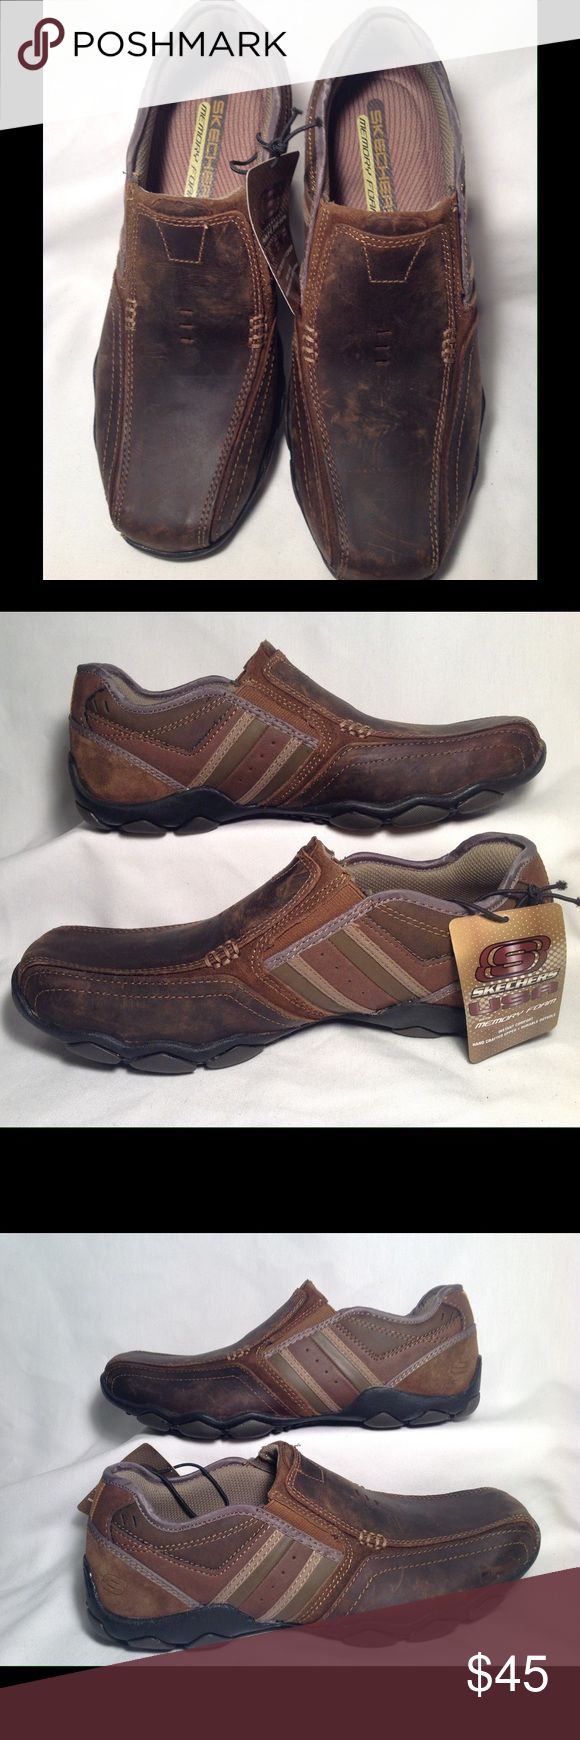 Skechers Diameter Zinroy Men's Slip-On Shoes Classic casual style comes with custom comfort in these Skechers slip-on shoes. In brown. These shoes are new from store display and have not been tried on or worn. Skechers Shoes Loafers & Slip-Ons